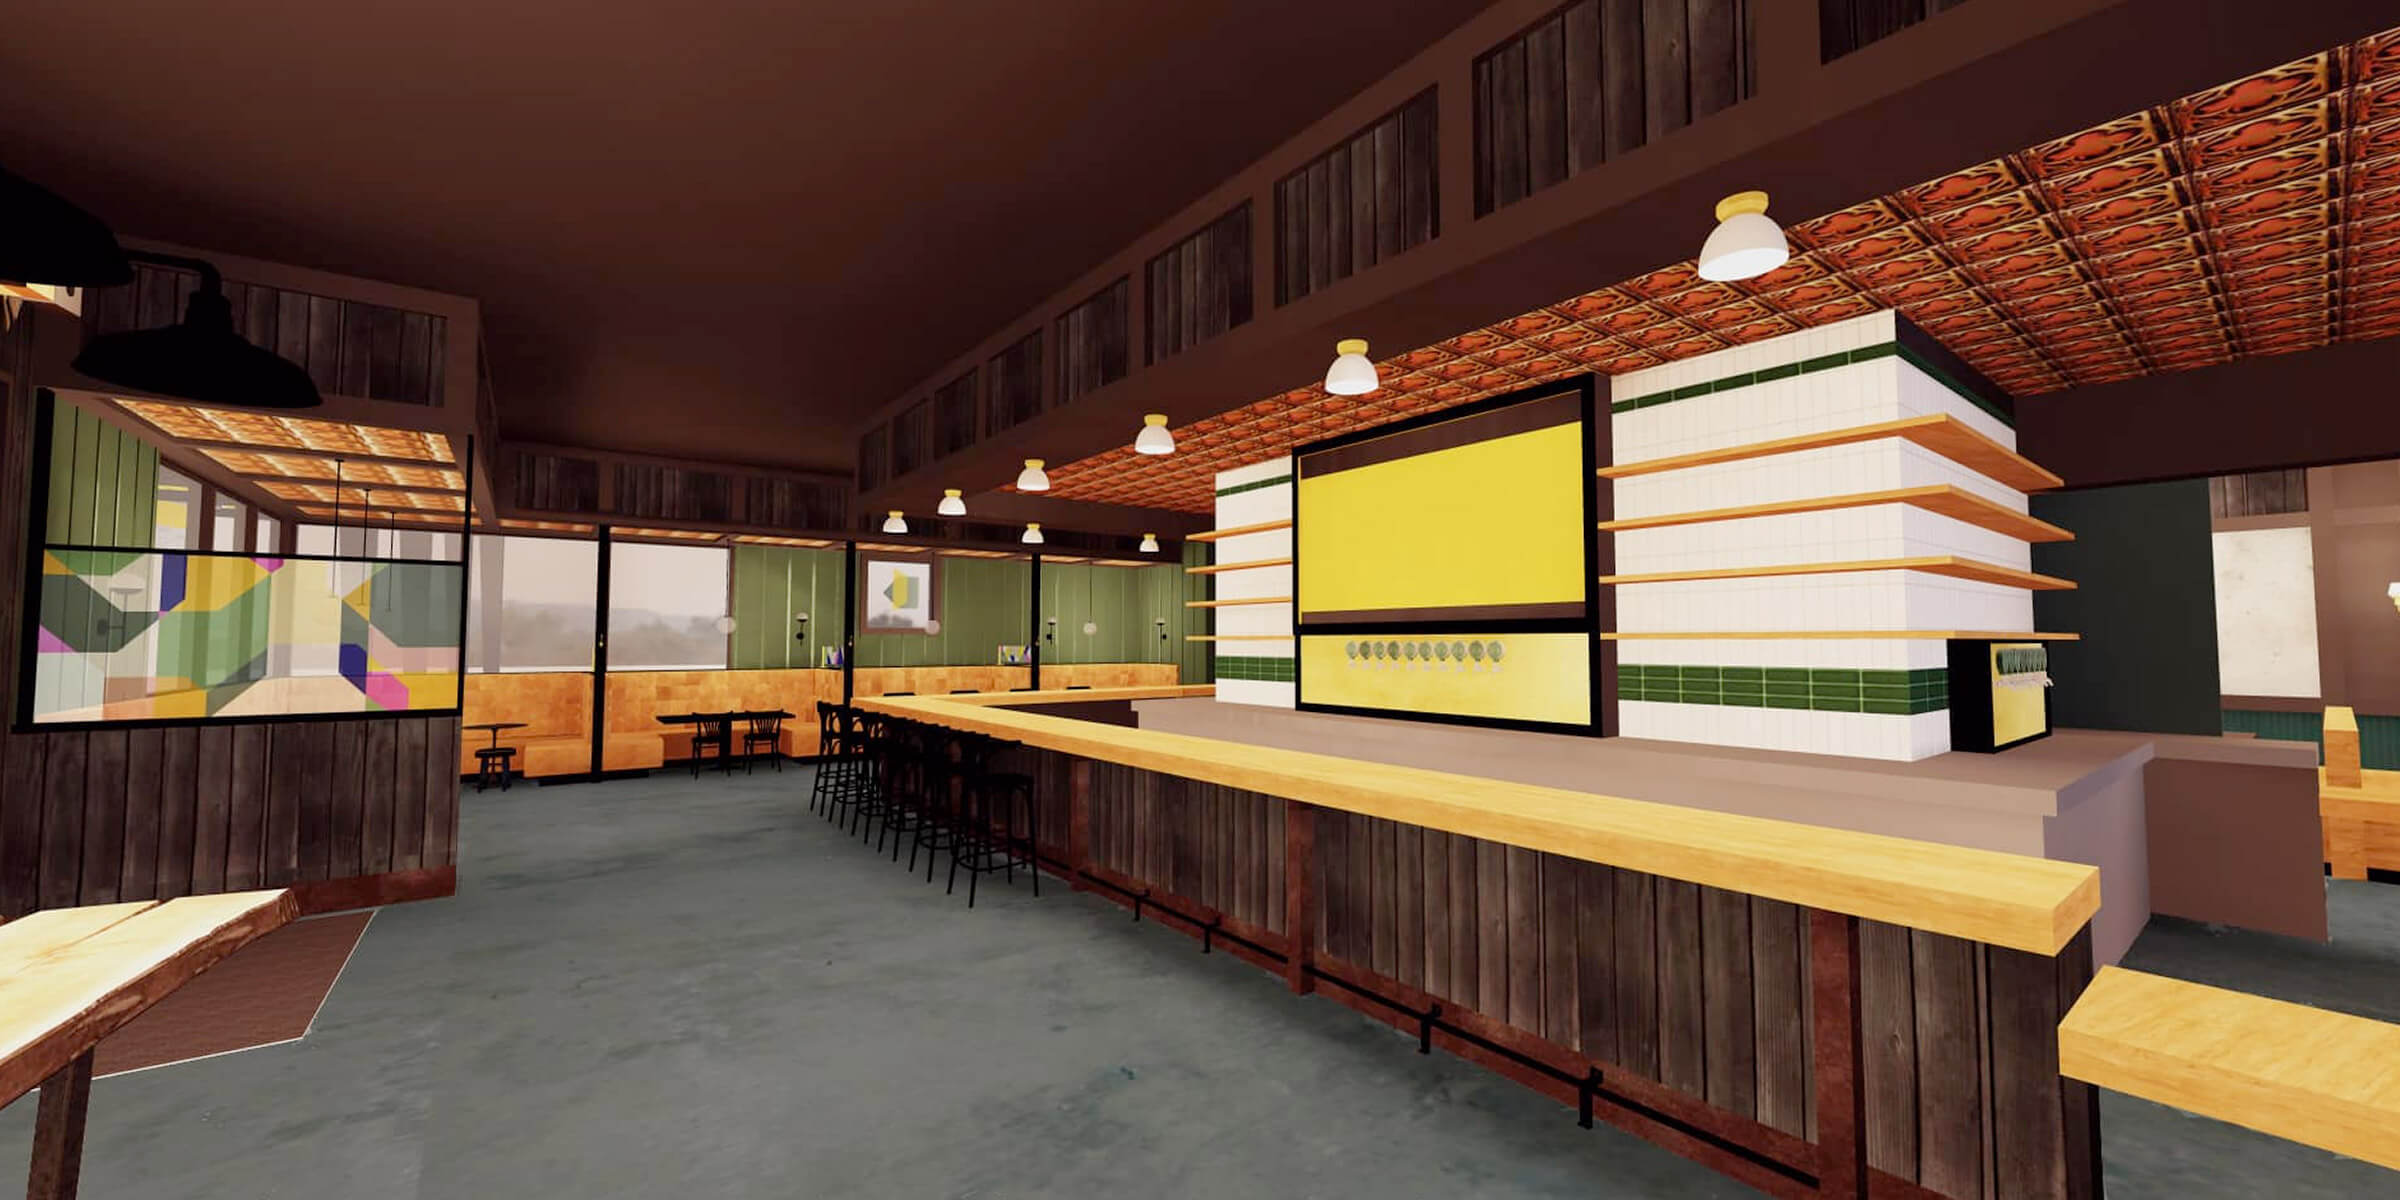 Conceptual art for the interior of Meanwhile Brewing Company, opening next year in Austin, Texas